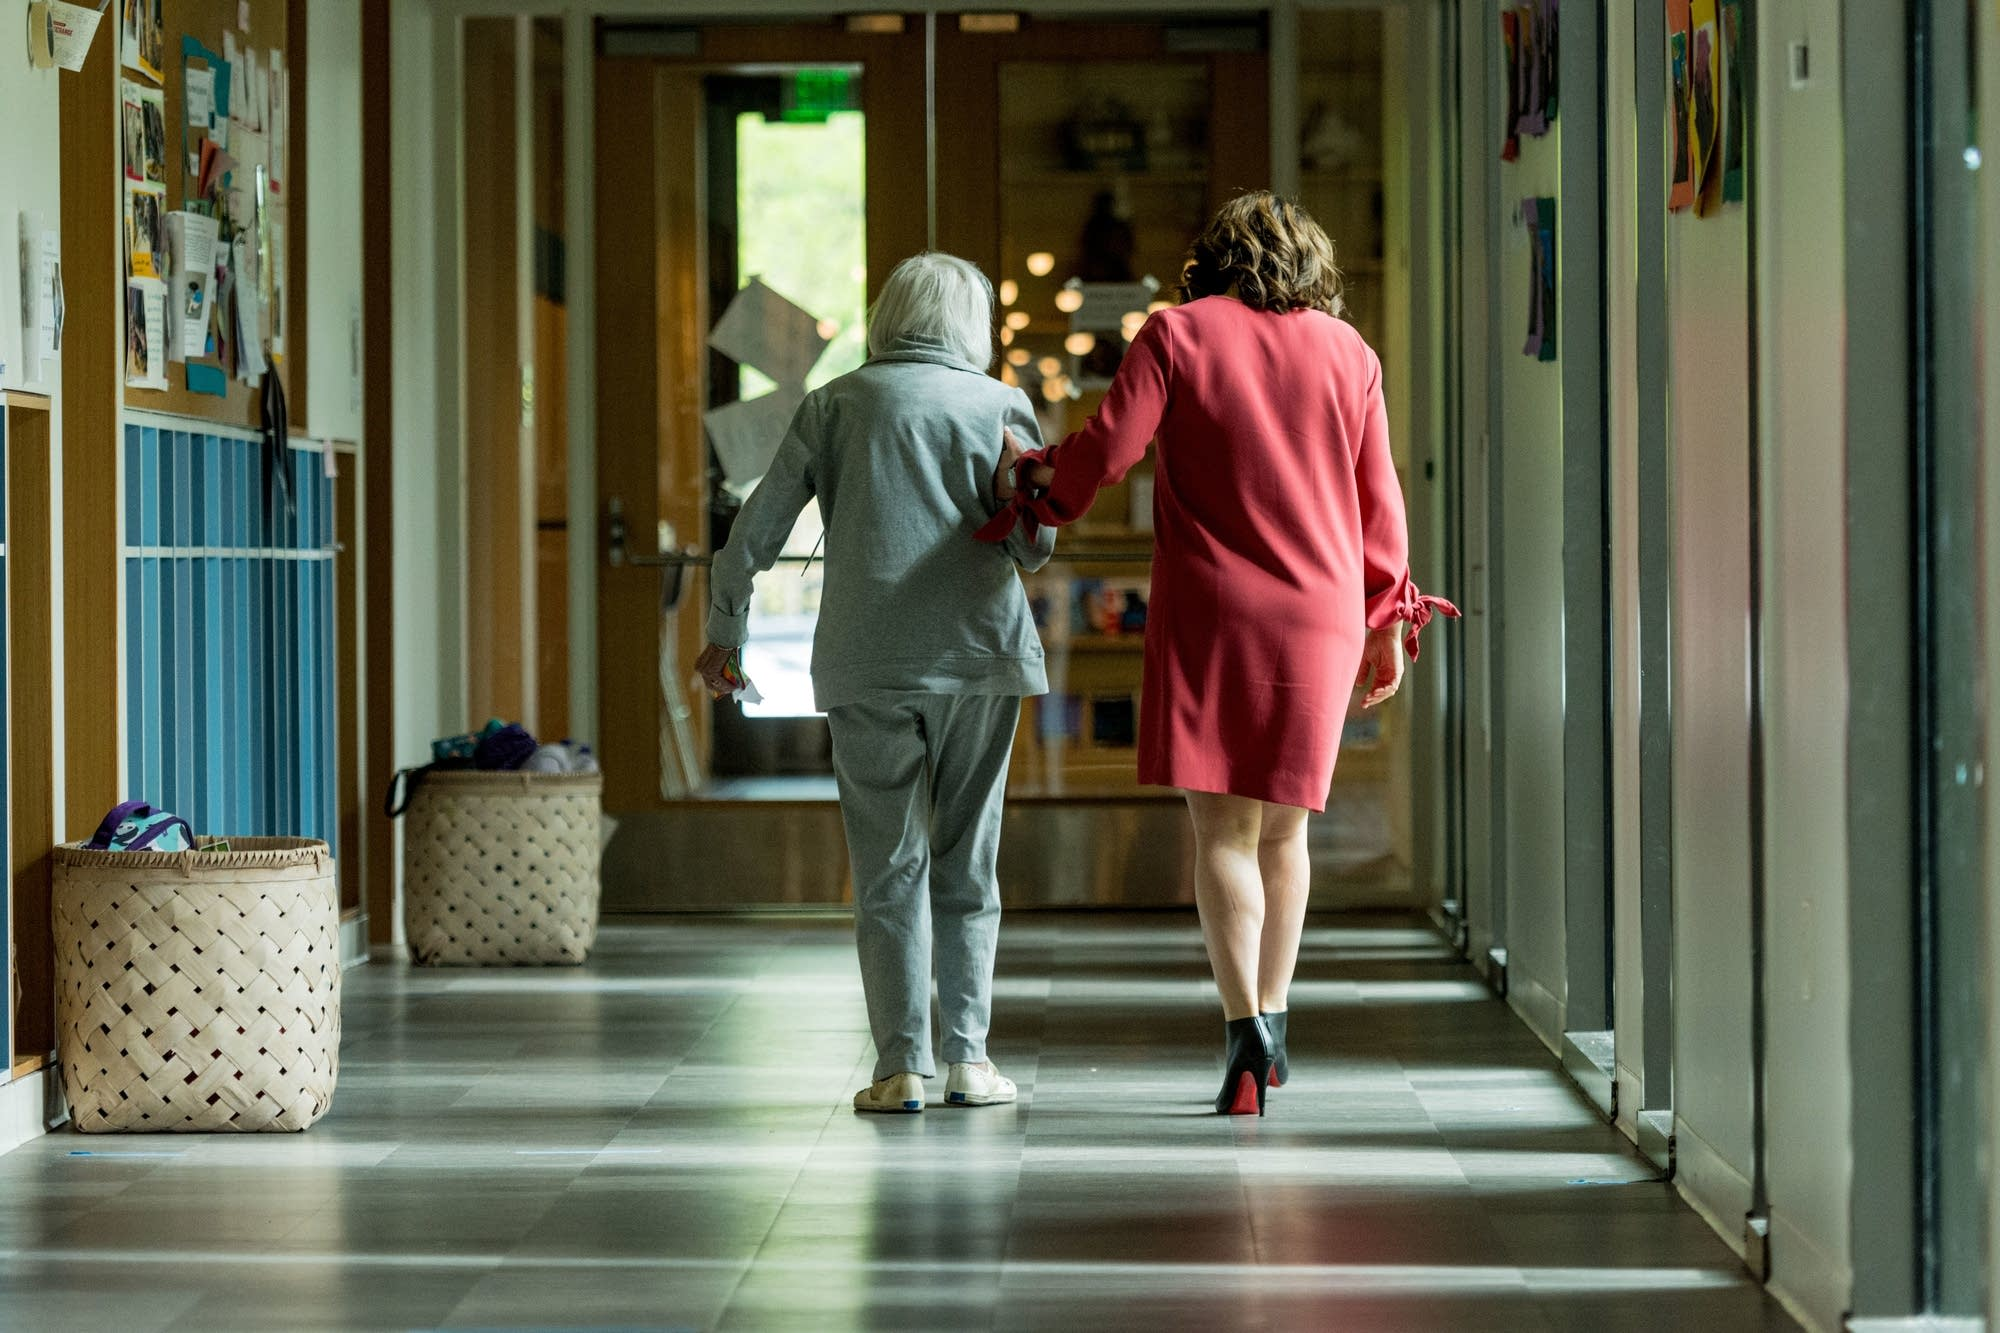 Ruth Knelman, left, and Rabbi Marcia Zimmerman walk down the hall.